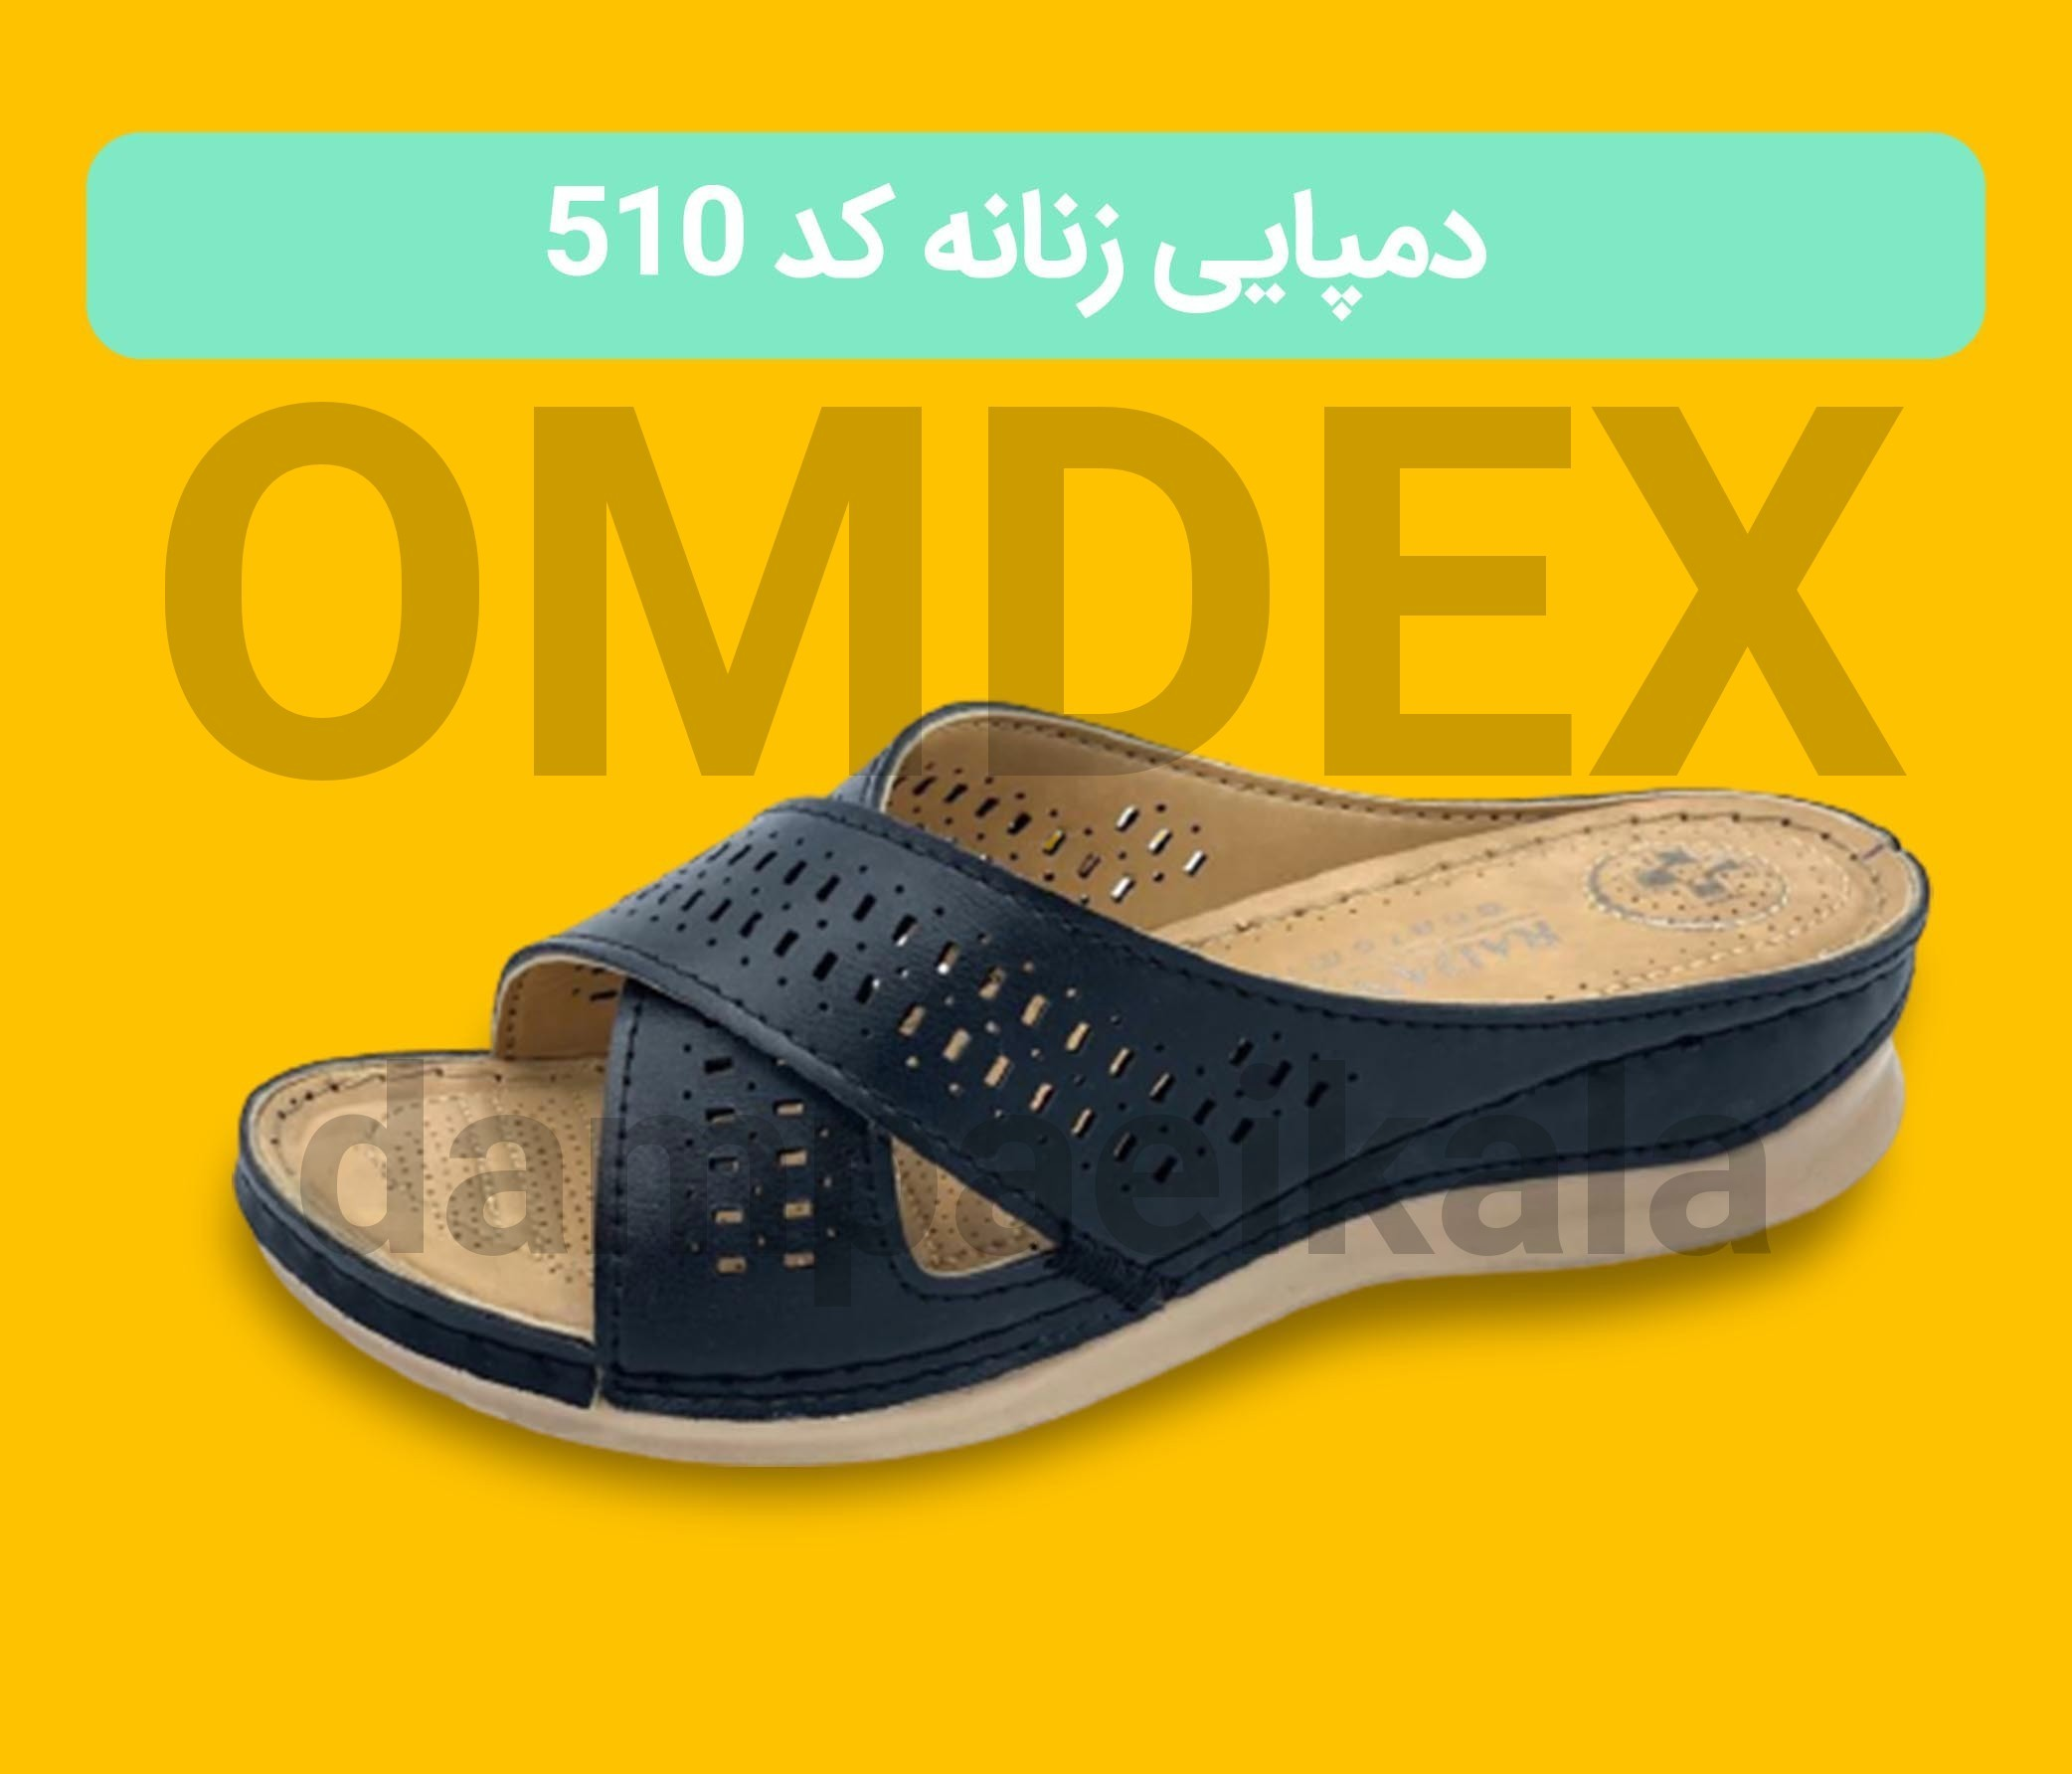 products  Women's slippers designed by Raya Sheila